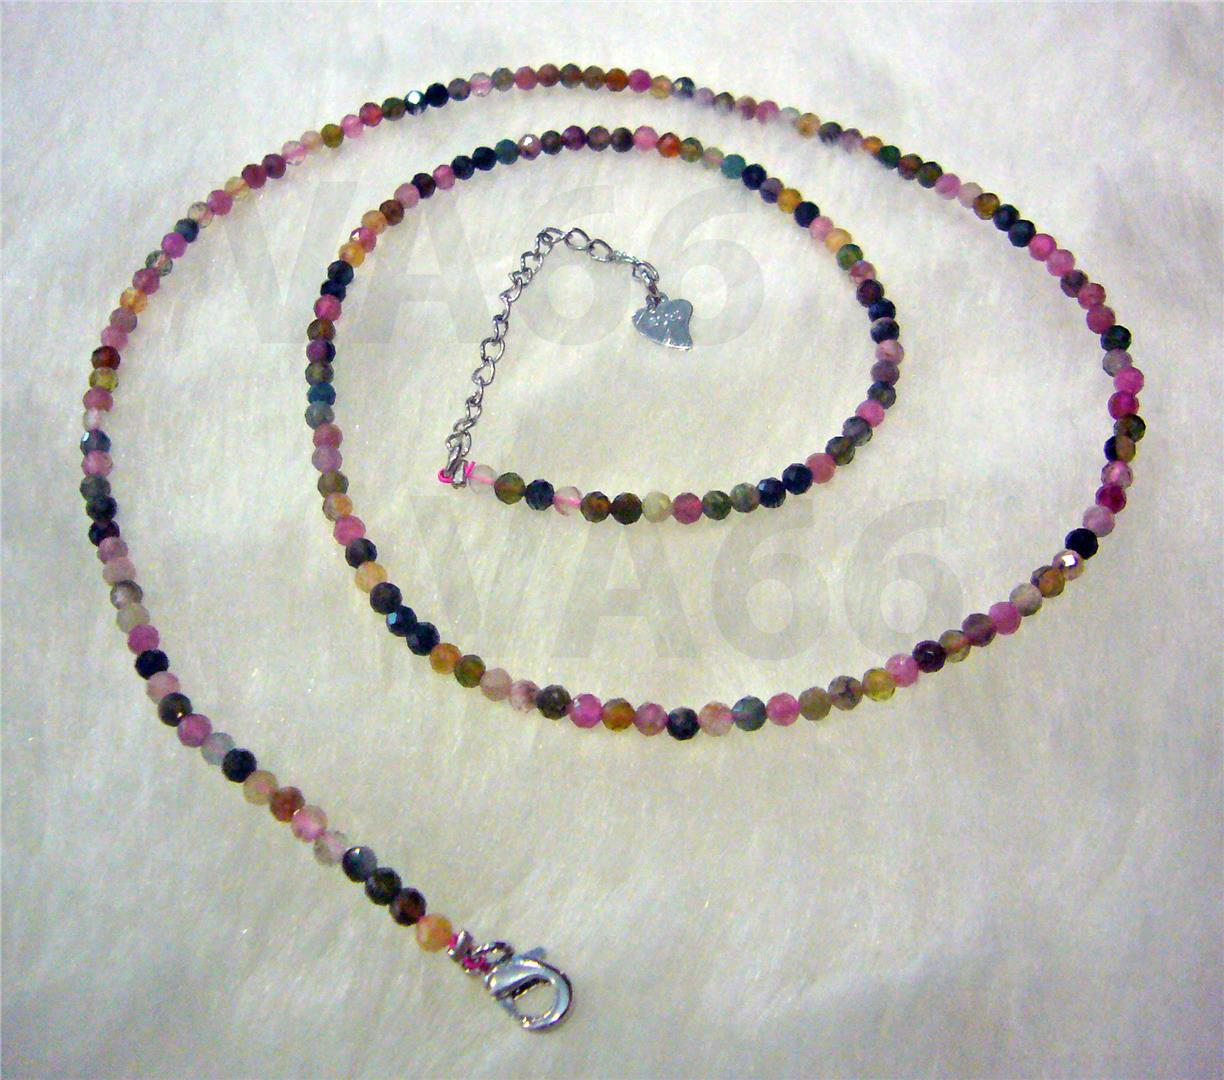 Natural Facetted Rainbow Tourmaline Gemstone Necklace Rantai Batu Asli